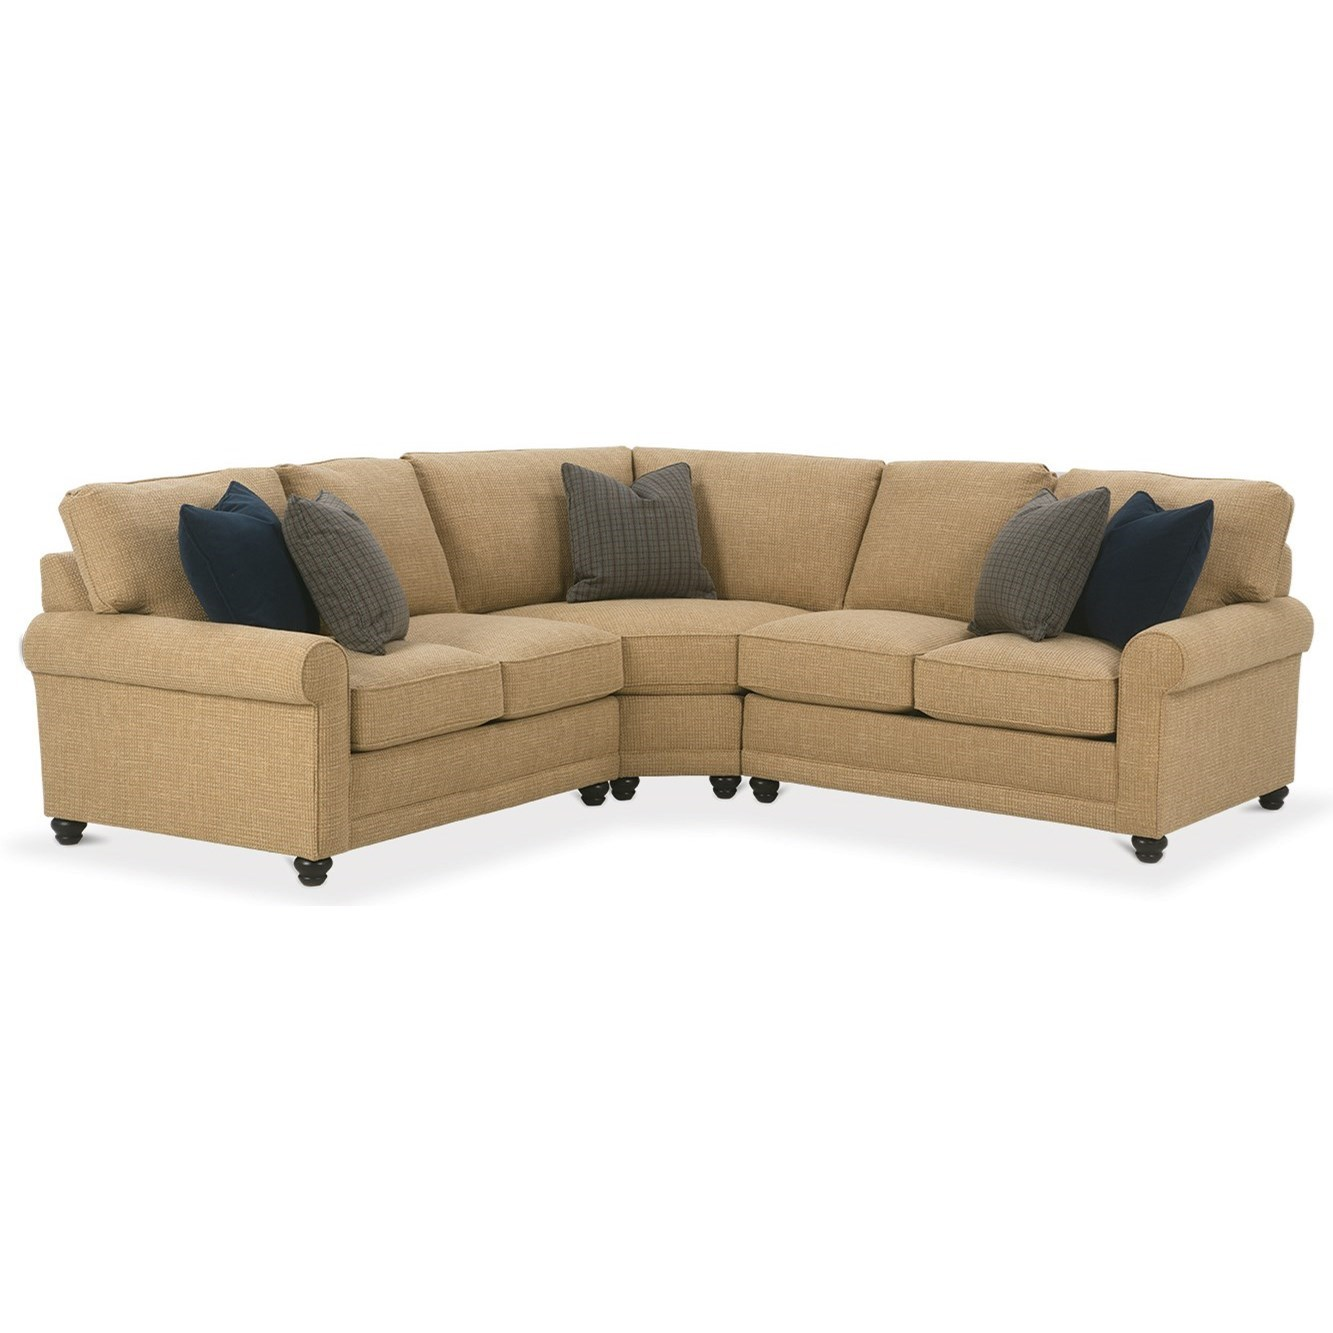 My Style I Customizable Sectional Sofa by Rowe at Baer's Furniture